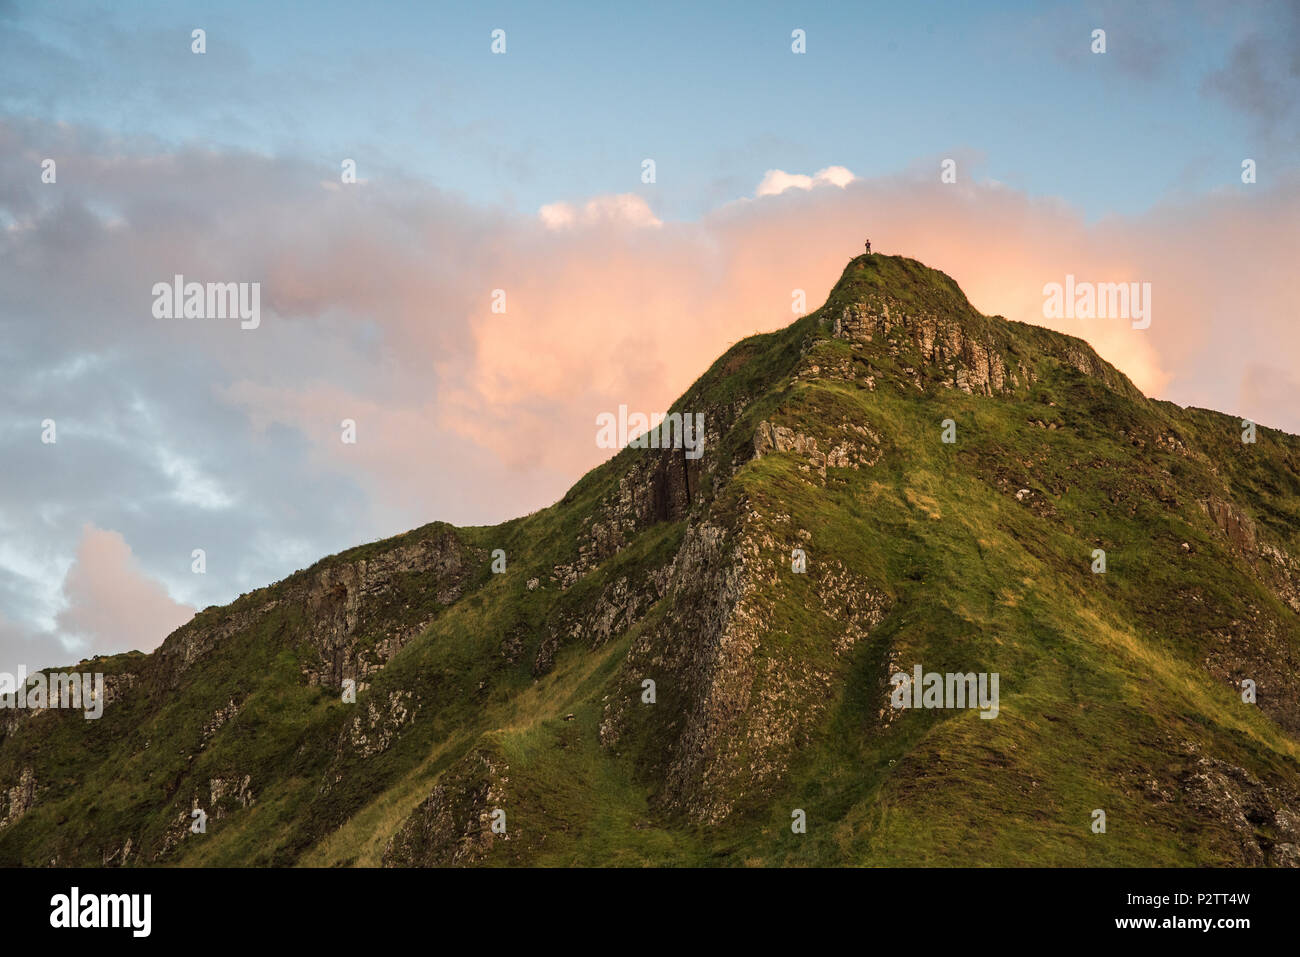 Landscape view of a distant person at the peak of a mountain near Giants Causeway in Northern Ireland. - Stock Image